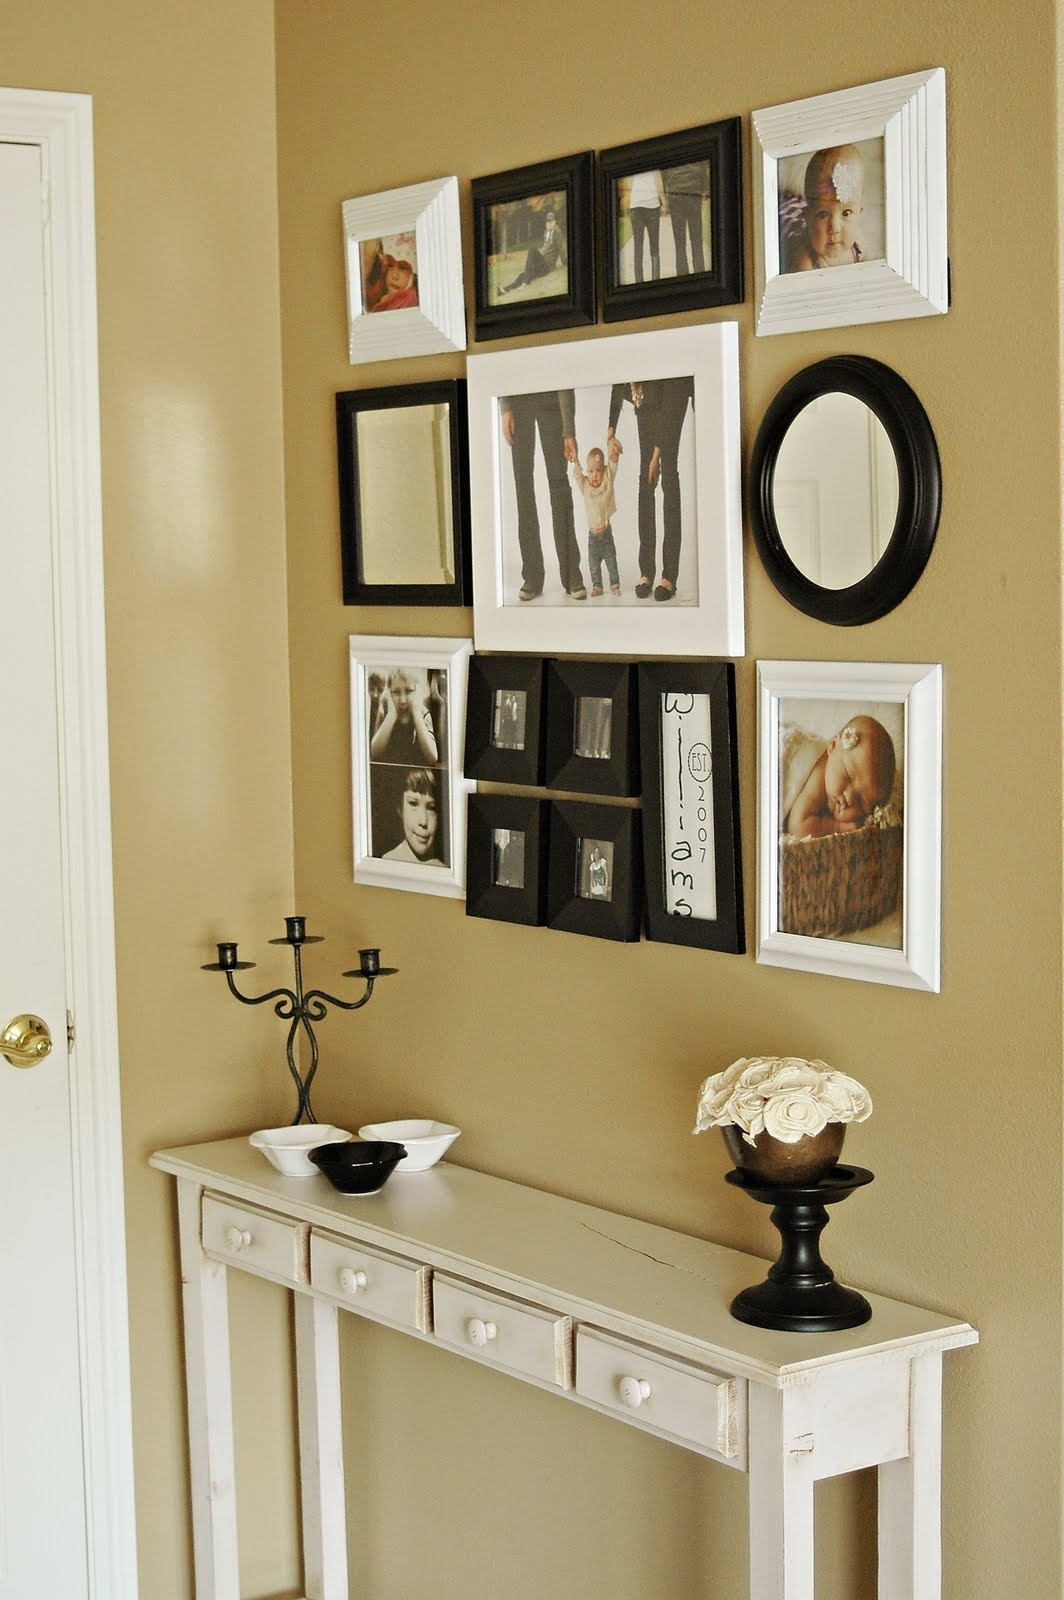 Interior | Photo Gallery Idea Entryway Wall Decor – Entryway Throughout Most Recently Released Entryway Wall Accents (View 2 of 15)